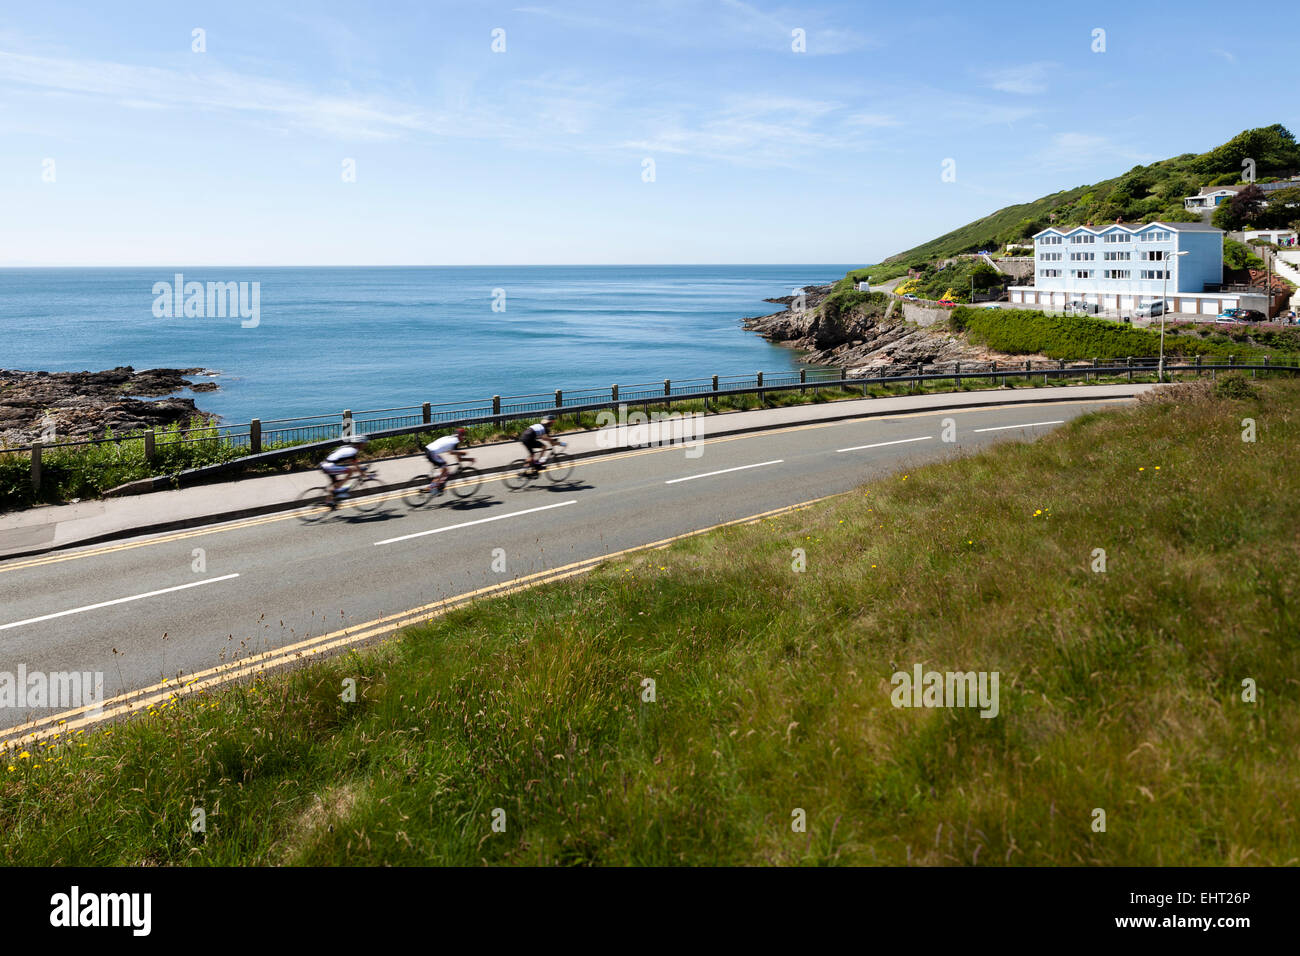 Cycling Gower Peninsula, West Wales, United Kingdom - Stock Image